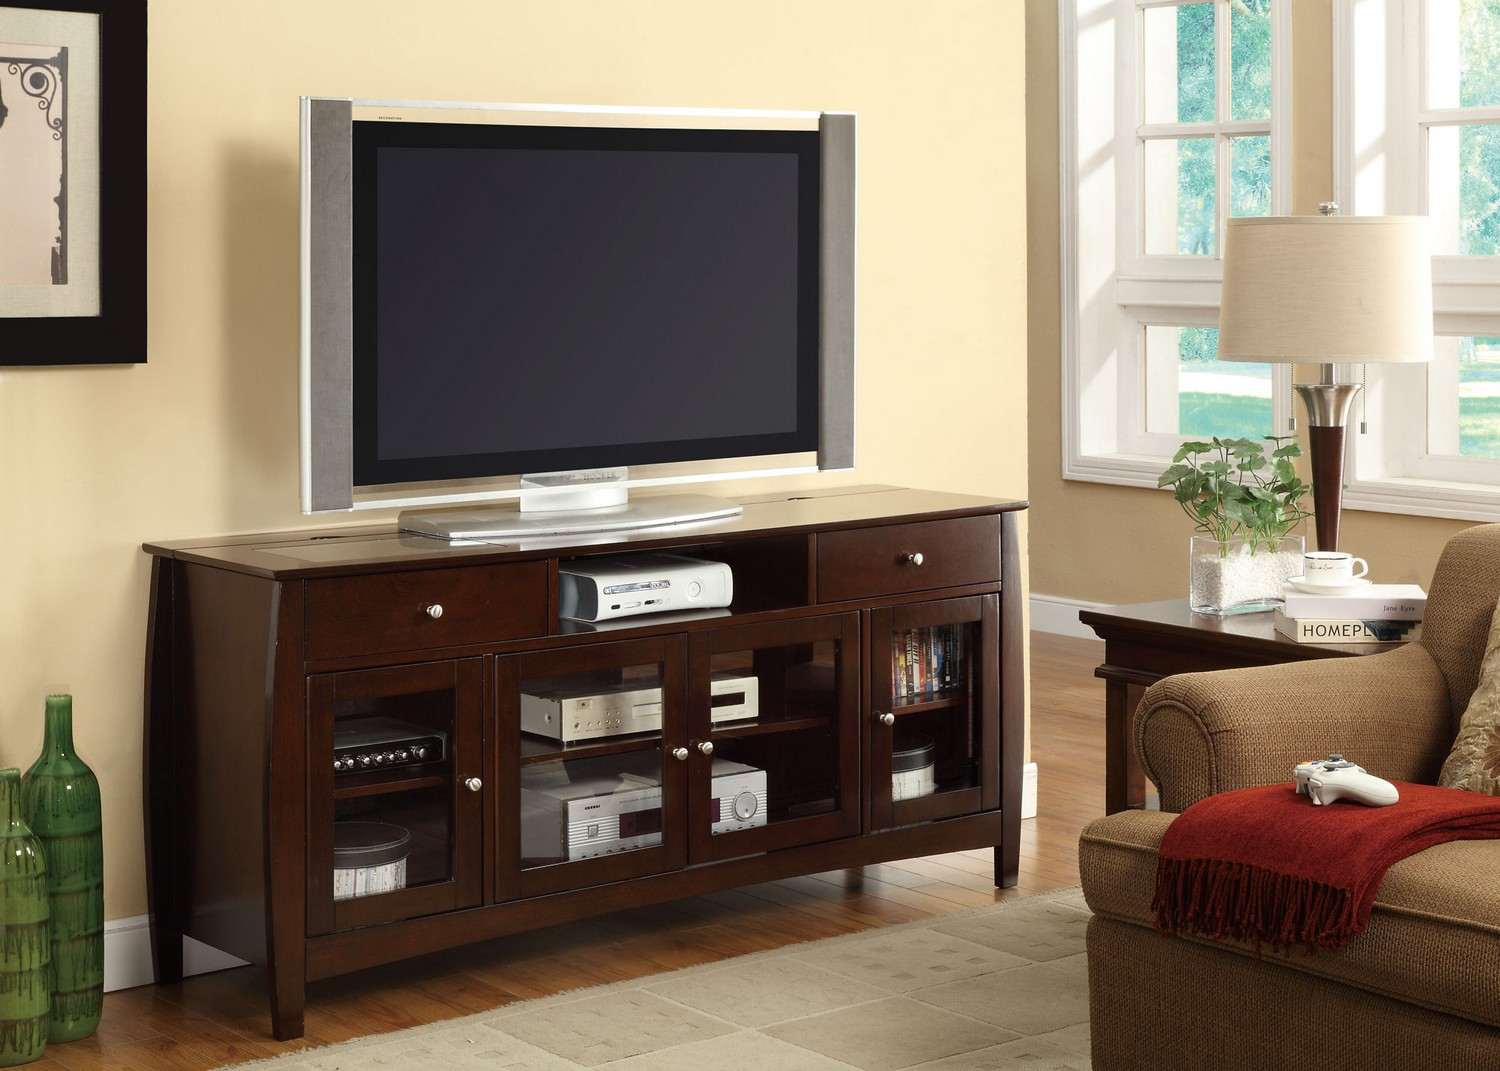 Coaster 700693 Connect-it TV Console - Espresso